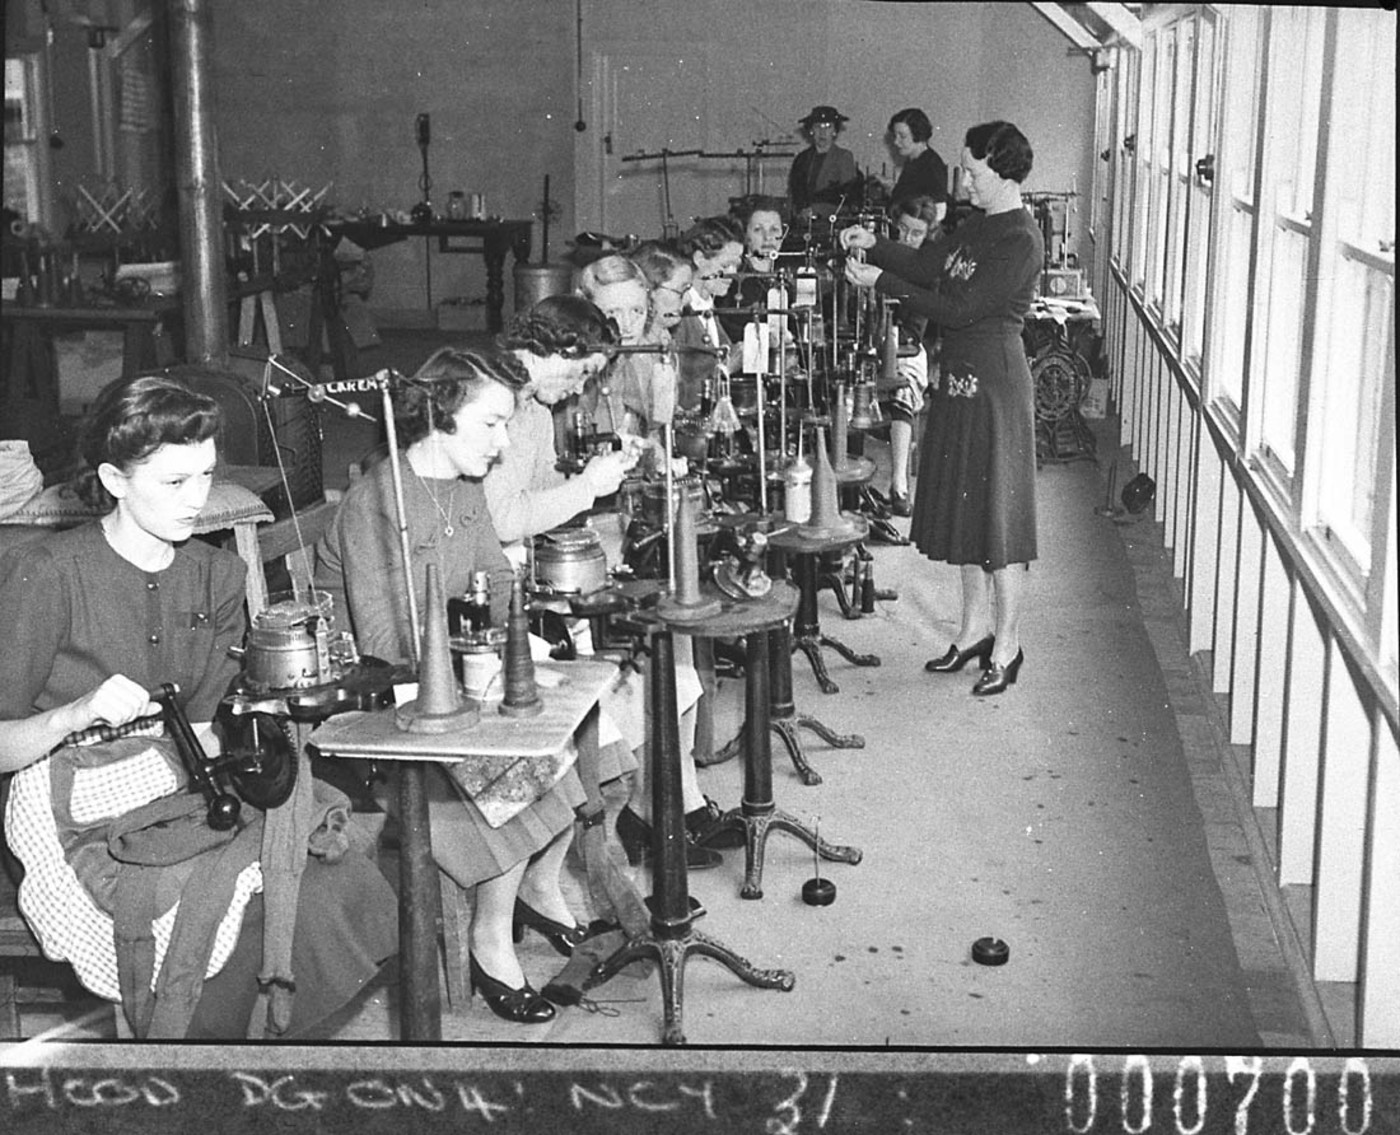 Women volunteers operating knitting machines (taken for Australian Comforts Fund), by Sam Hood March 1944